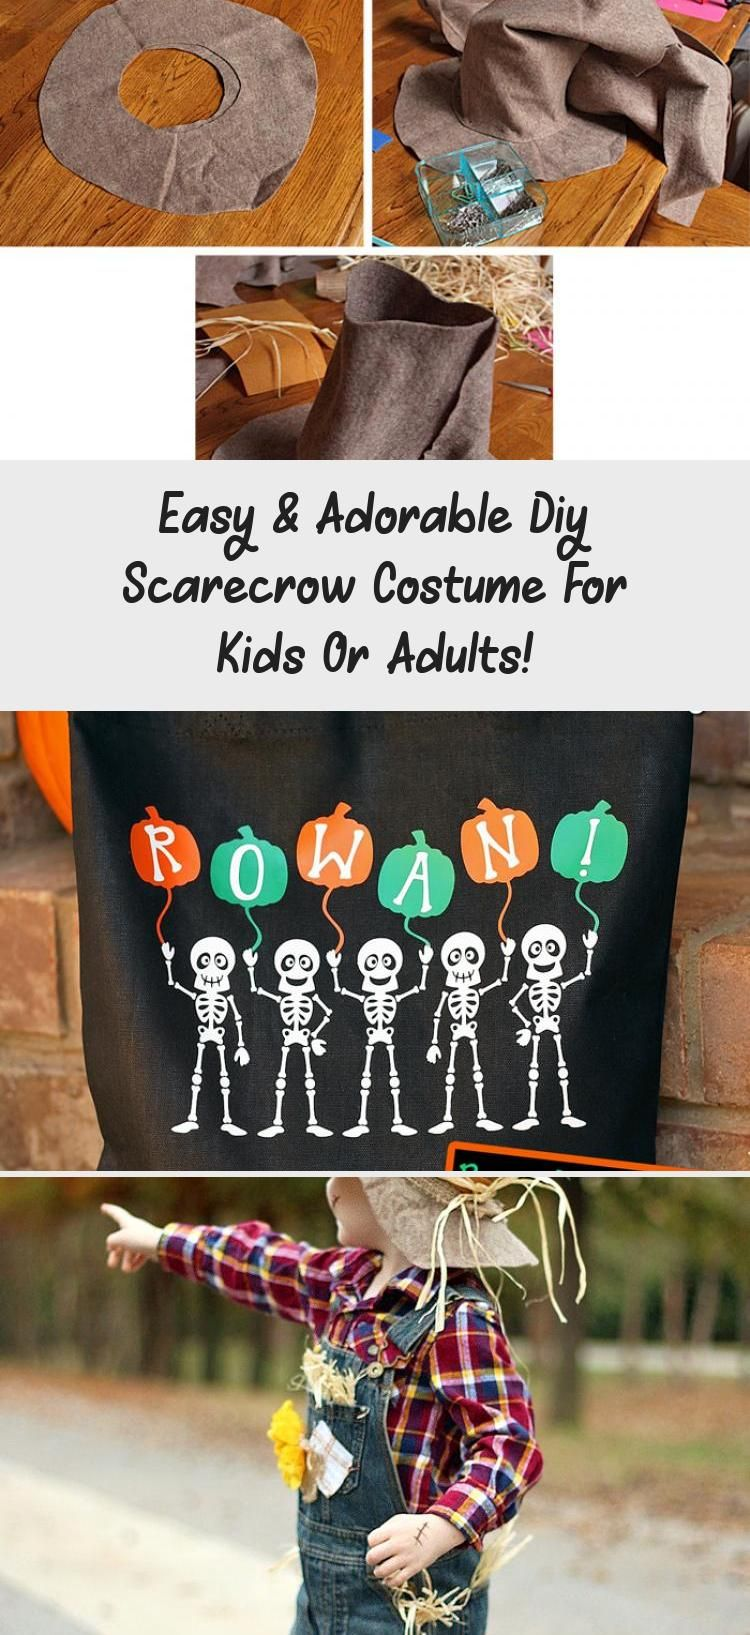 Easy & Adorable Diy Scarecrow Costume For Kids Or Adults! #scarecrowcostumediy